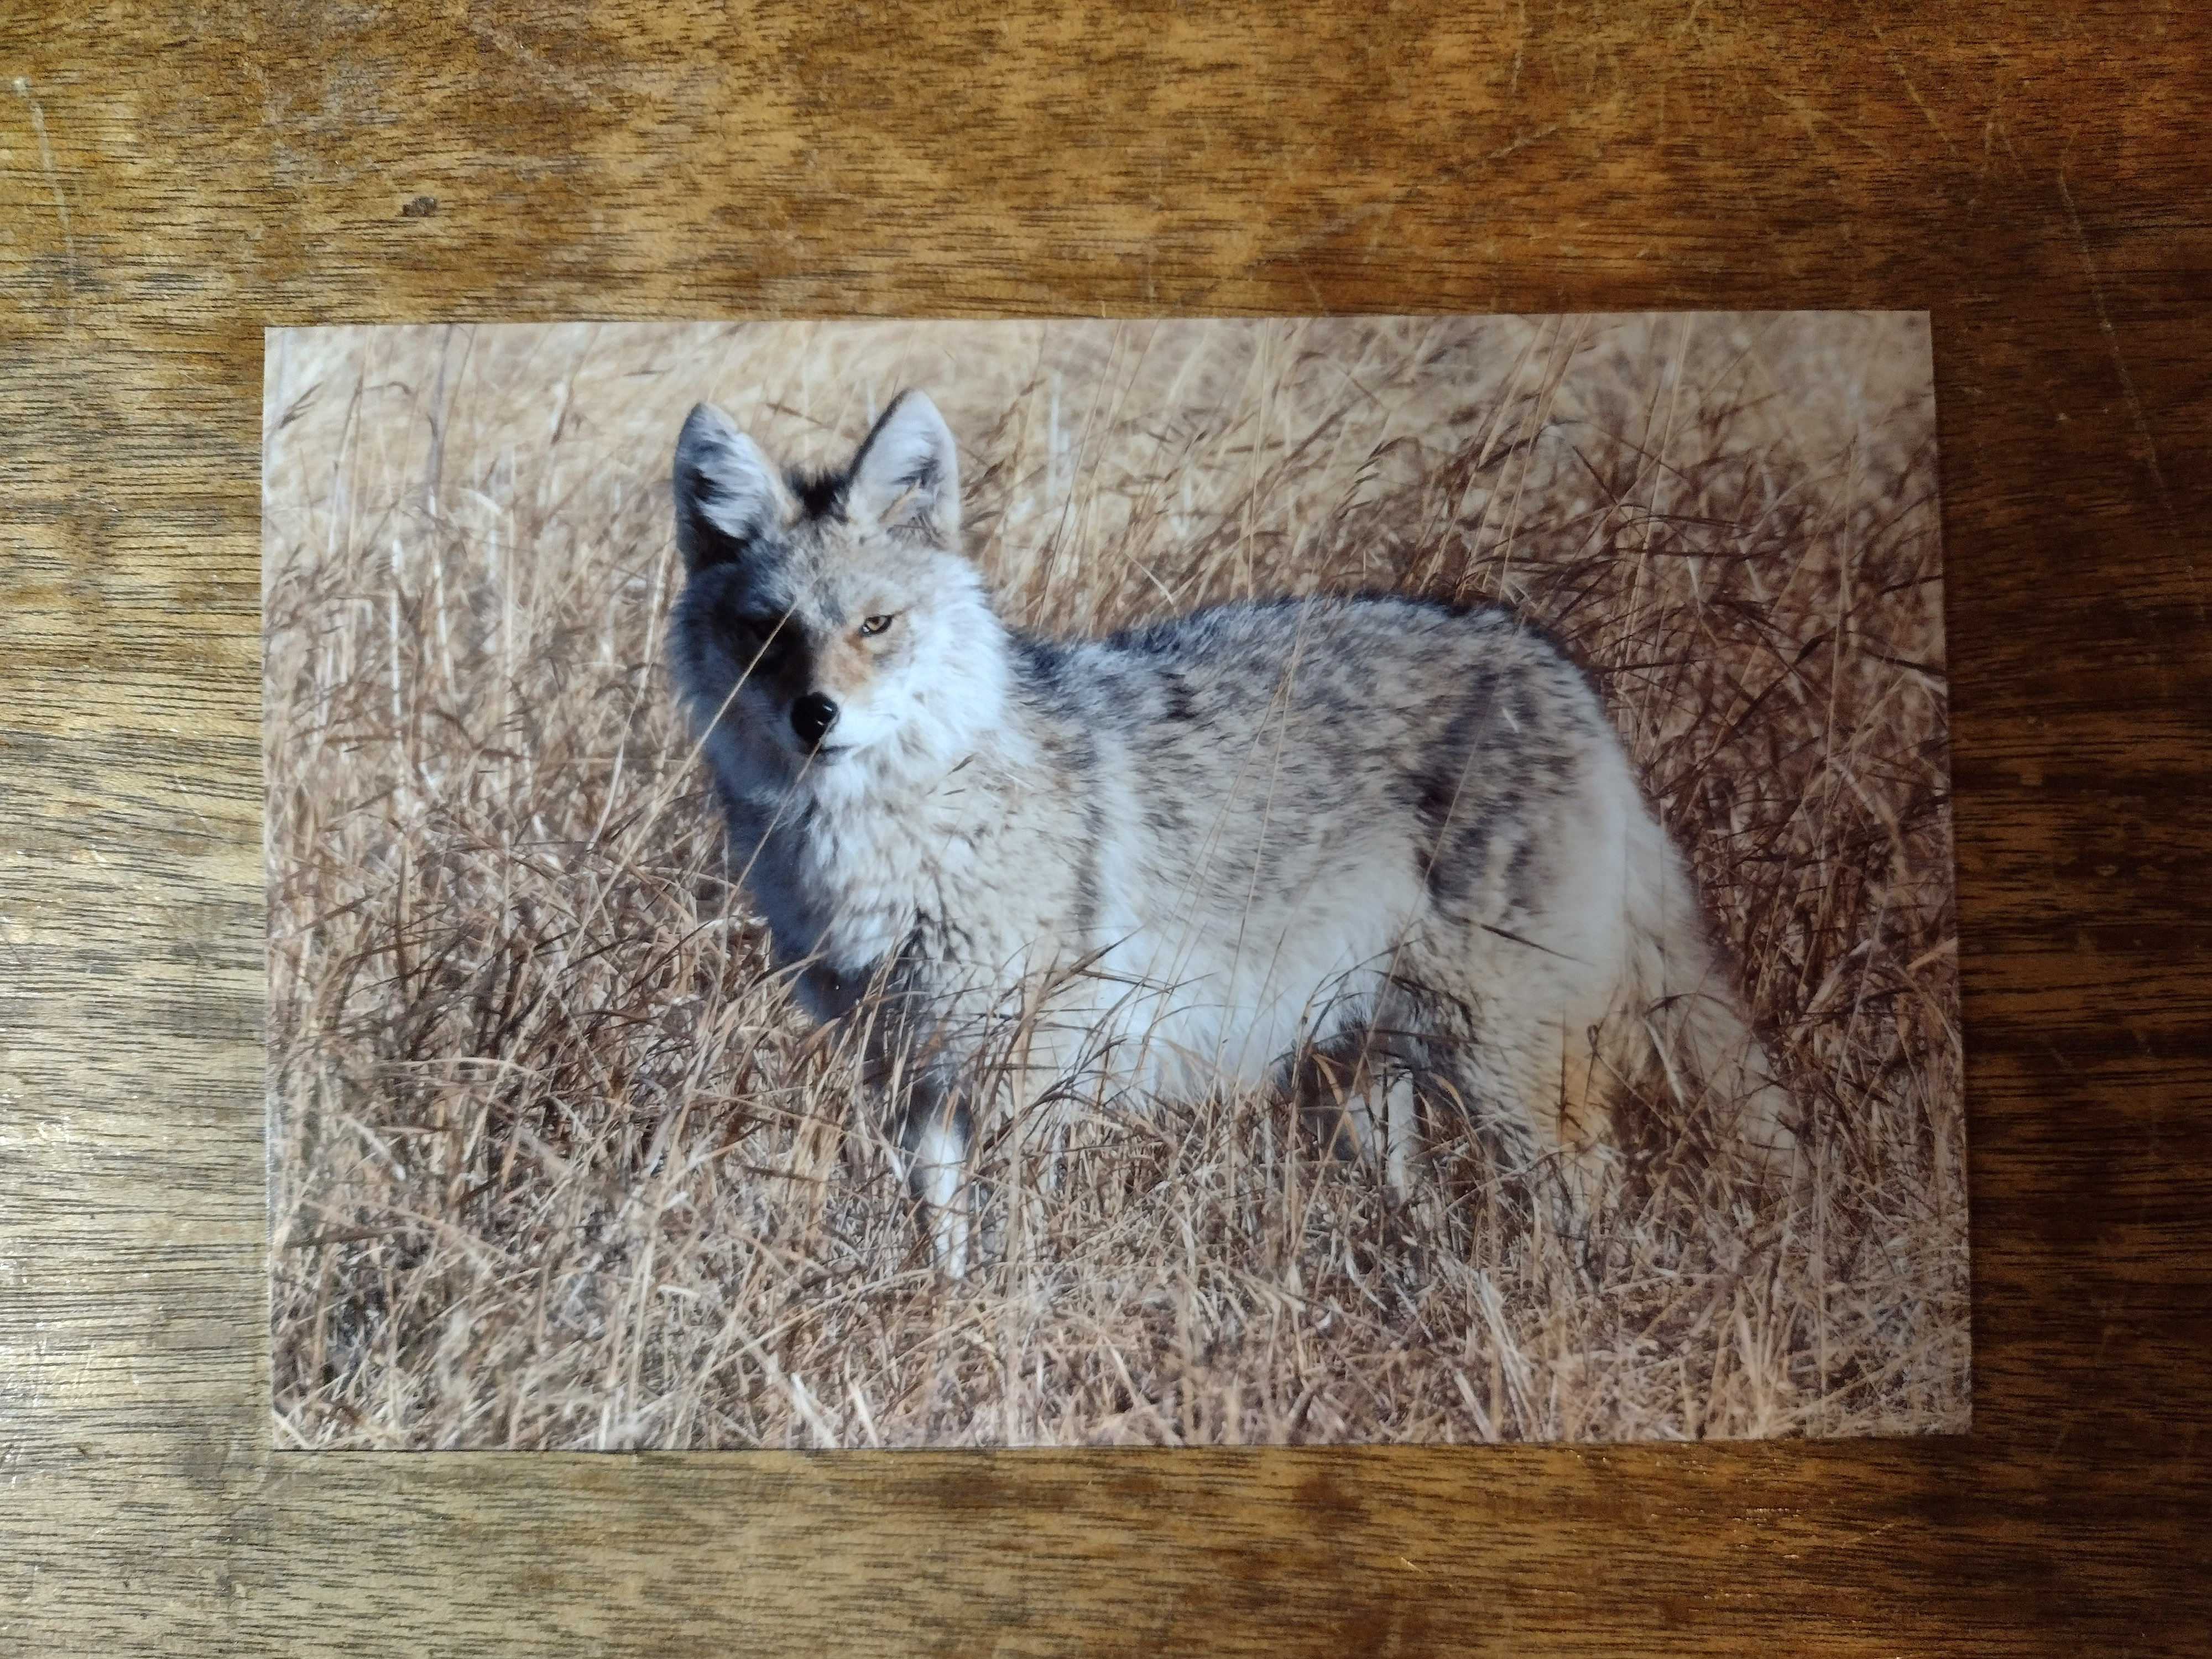 4x6 inch proof print of a coyote